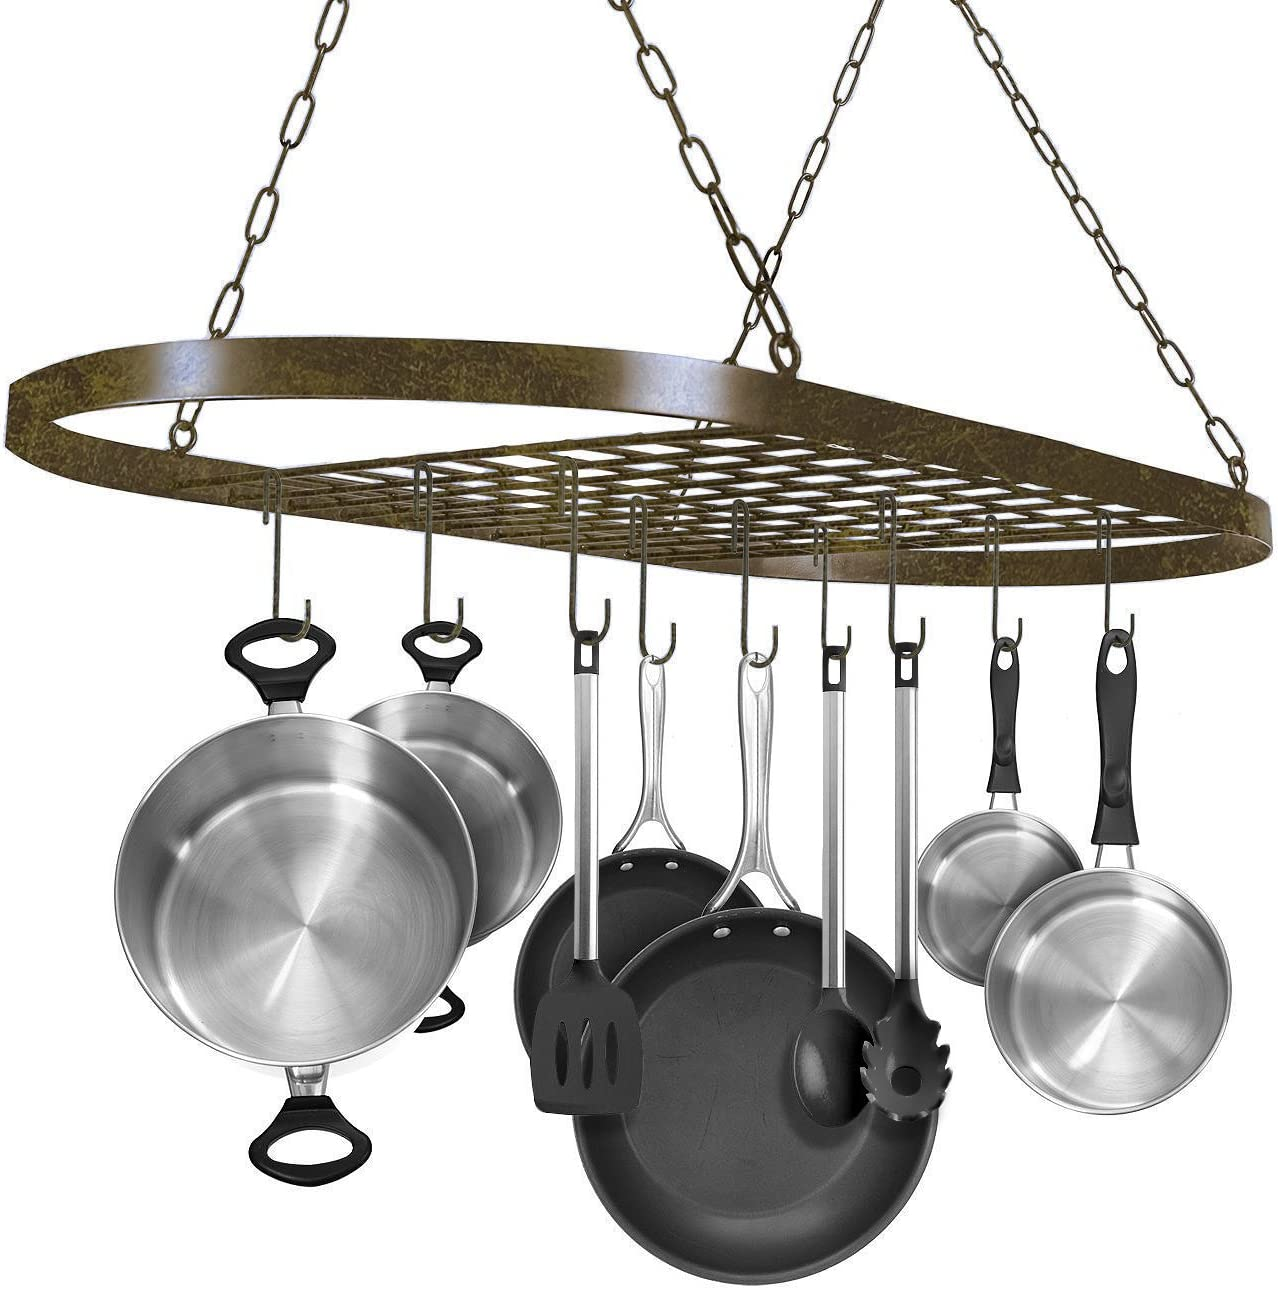 Utensils Household Sorbus Pot and Pan Rack for Ceiling with Hooks /— Decorative Oval Mounted Storage Rack /— Multi-Purpose Organizer for Home Rustic Books Kitchen Cookware Restaurant